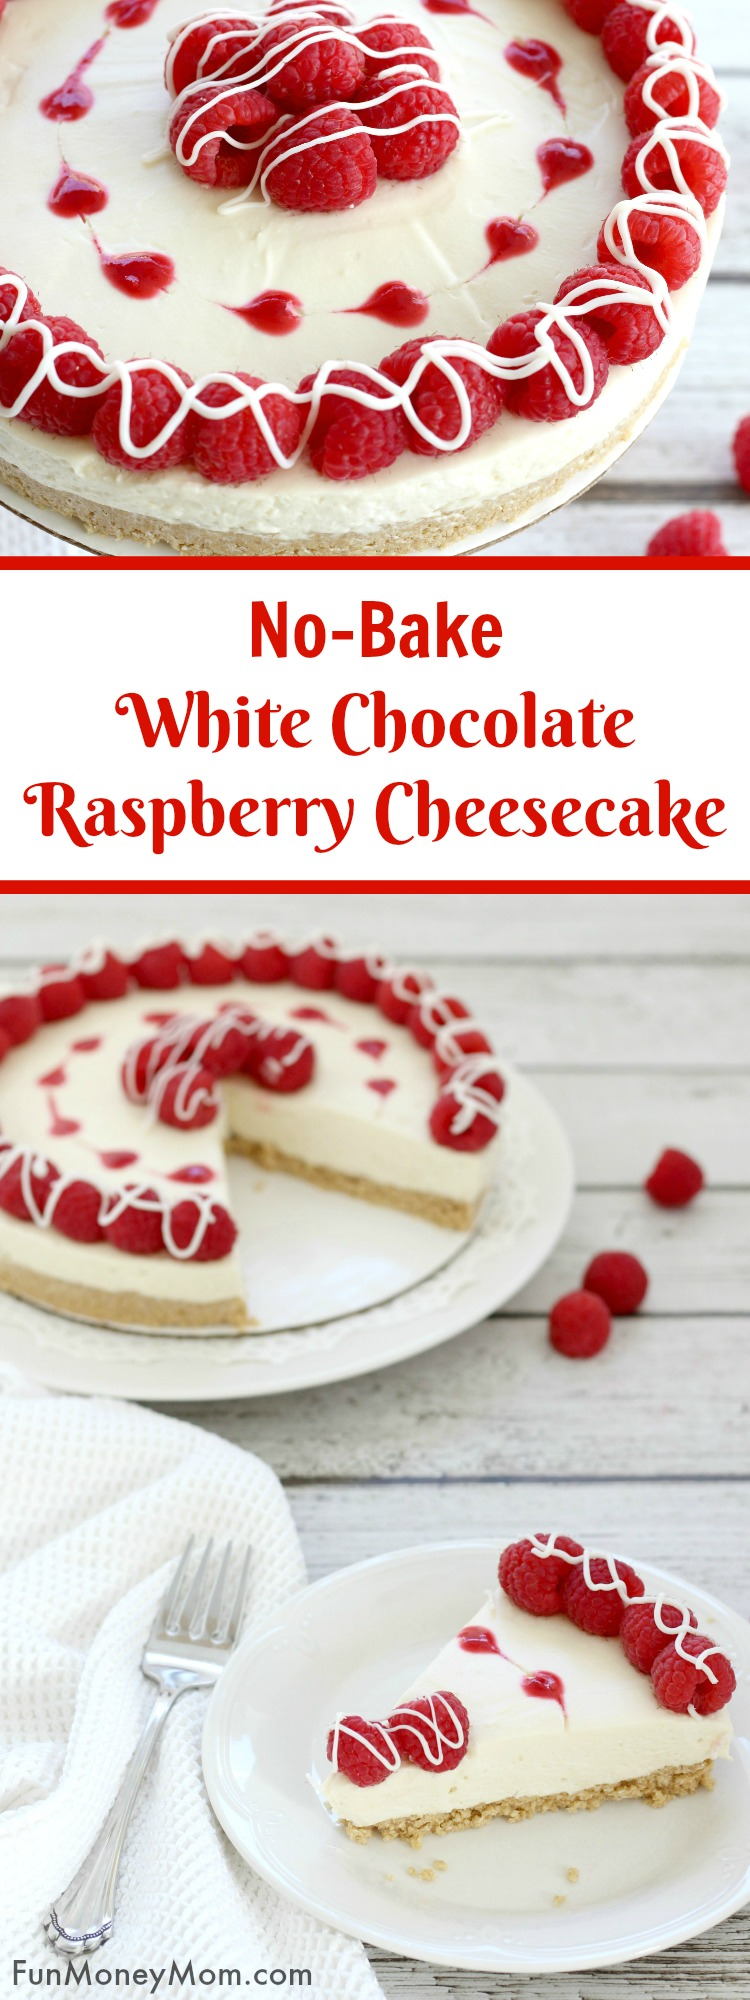 White Chocolate Raspberry Cheesecake - This no-bake cheesecake recipe is the perfect dessert for any occasion. It can be a Valentine's Day cake to show someone you love them or just an easy dessert recipe to enjoy when you're craving a sweet treat. Can you ever really go wrong with a white chocolate dessert?!